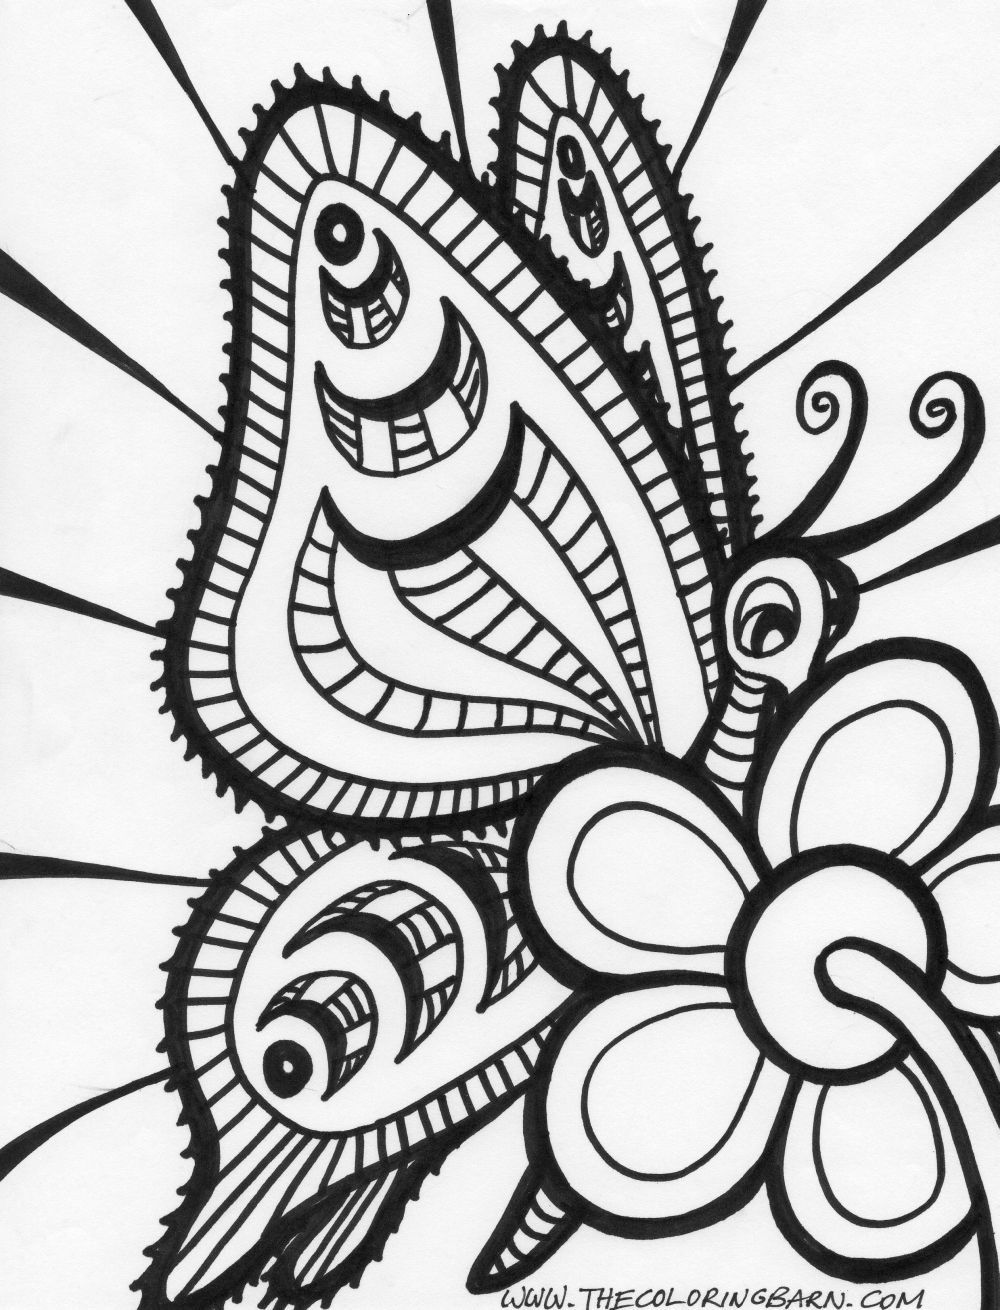 Free coloring pages for adults abstract - Free Coloring Pages For Adults Printable Hard To Color Abstract